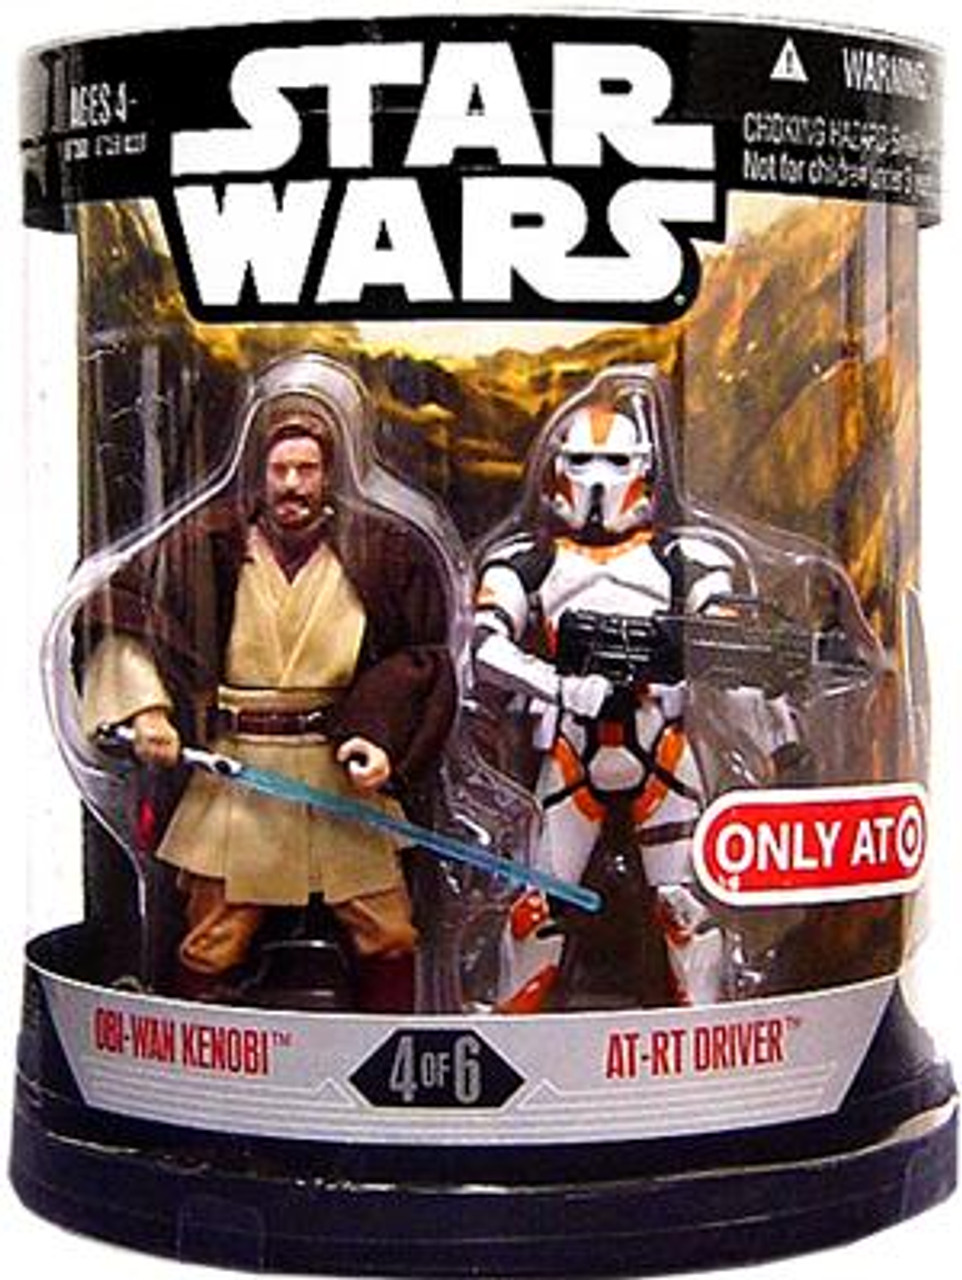 Star Wars Revenge of the Sith Order 66 2007 Obi-Wan & AT-RT Driver Exclusive Action Figure 2-Pack #4 of 6